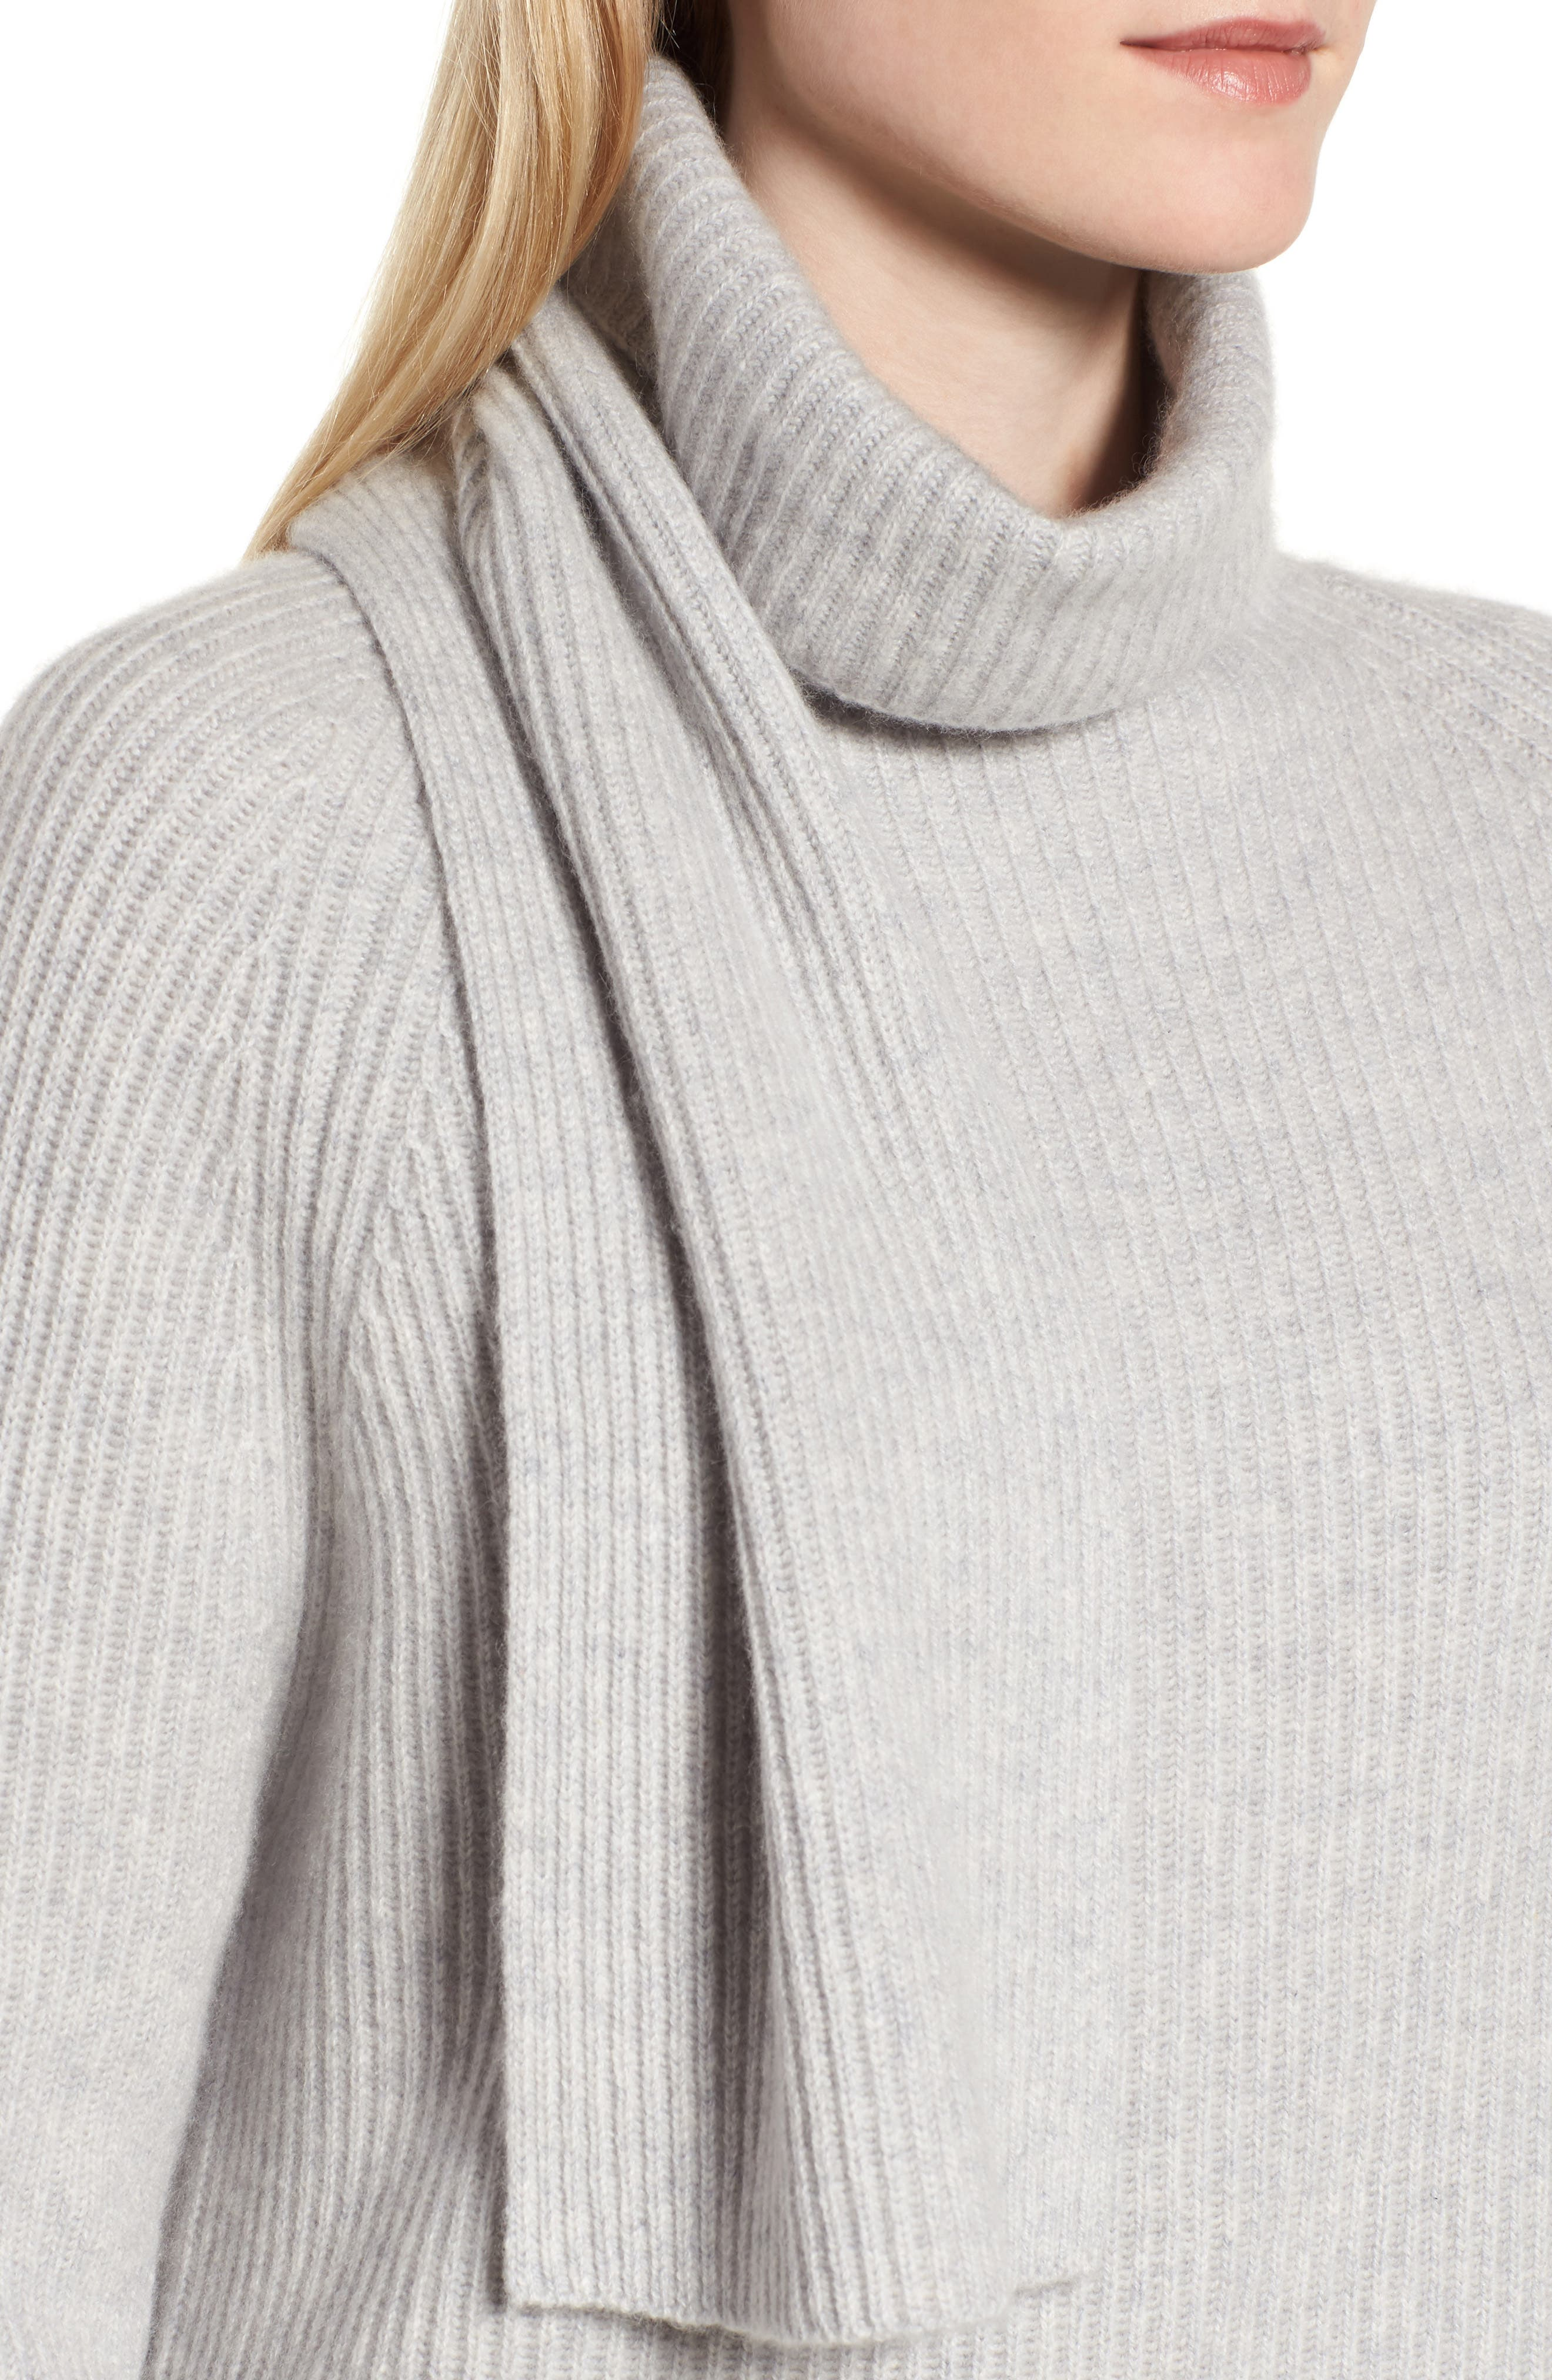 Scarf Neck Cashmere Sweater,                             Alternate thumbnail 4, color,                             050